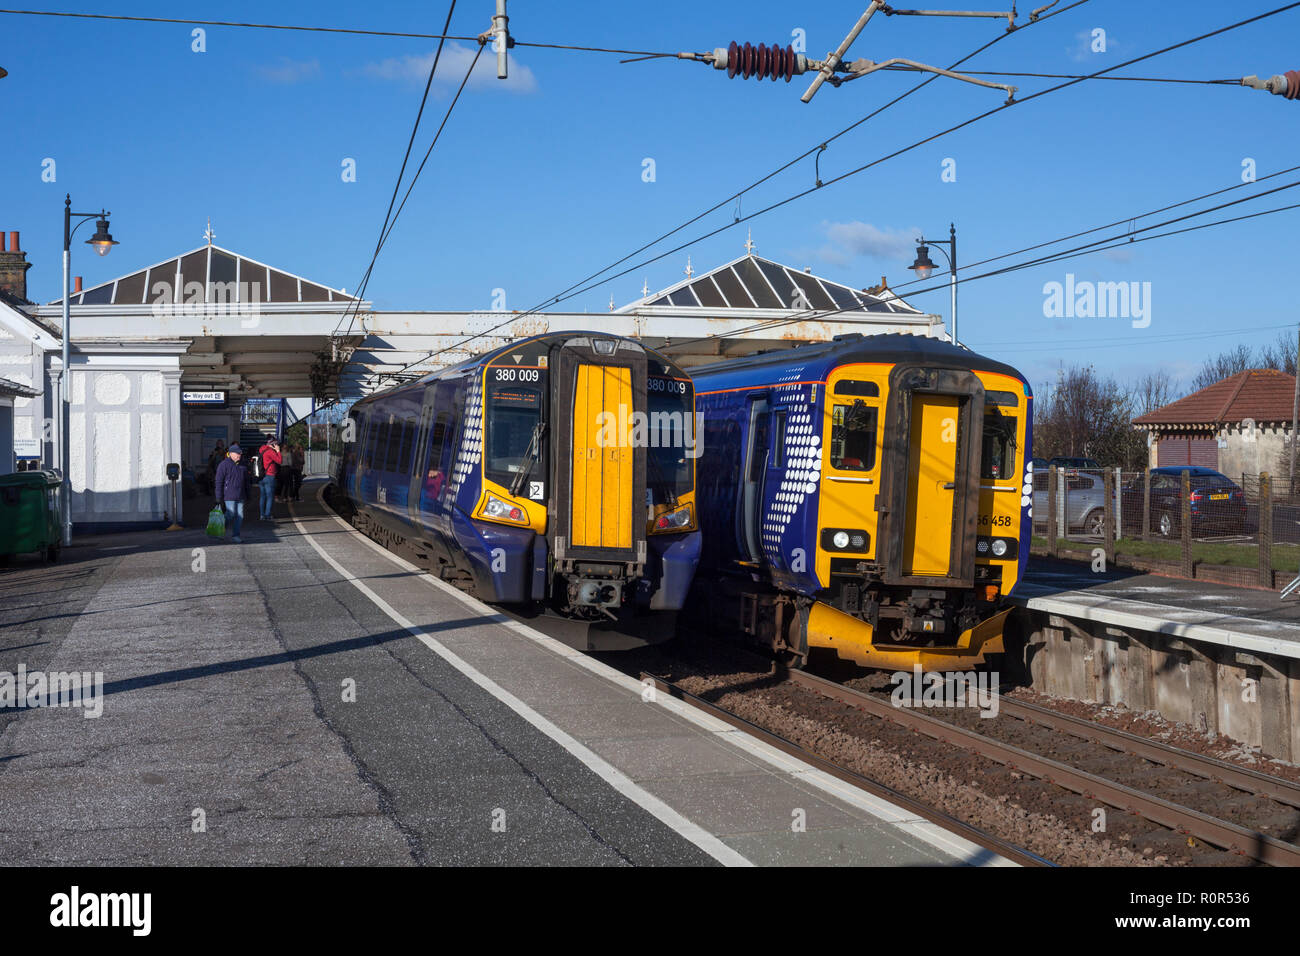 Scotrail class 156 diesel sprinter train and class 380 electric train at Troon railway station on the Ayrshire coast railway line, Scotland, UK - Stock Image